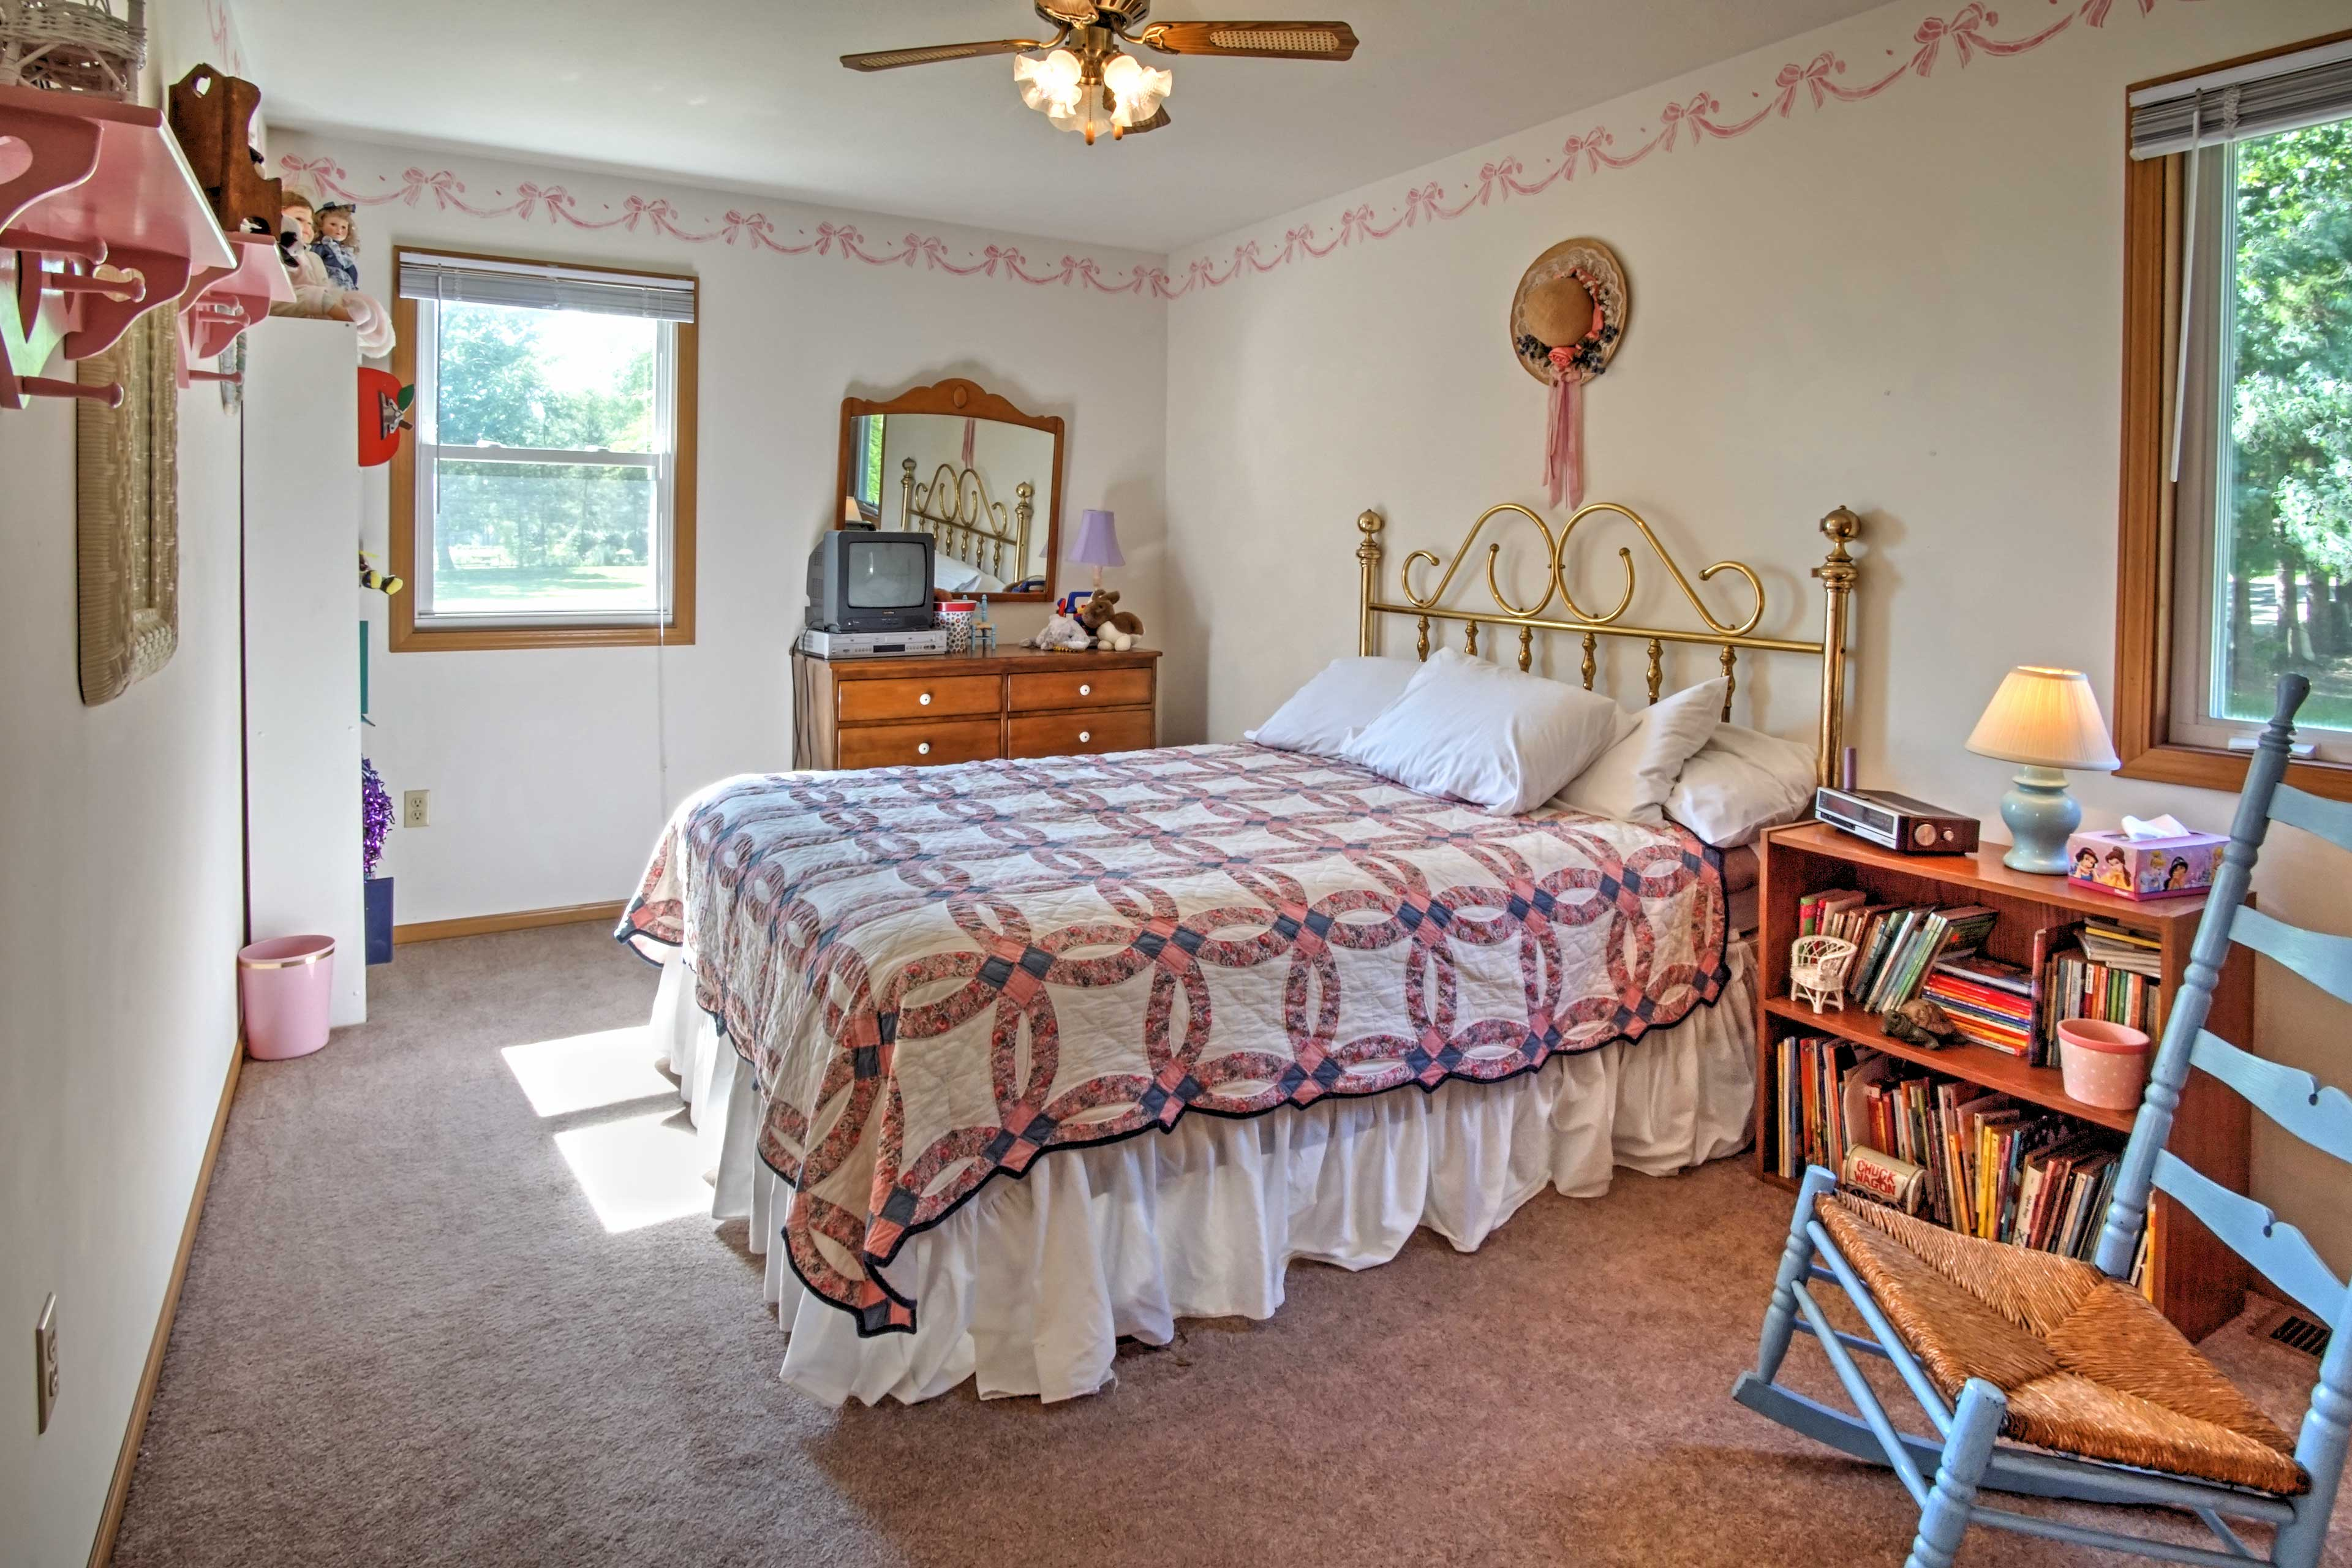 The third bedroom also includes a queen bed.